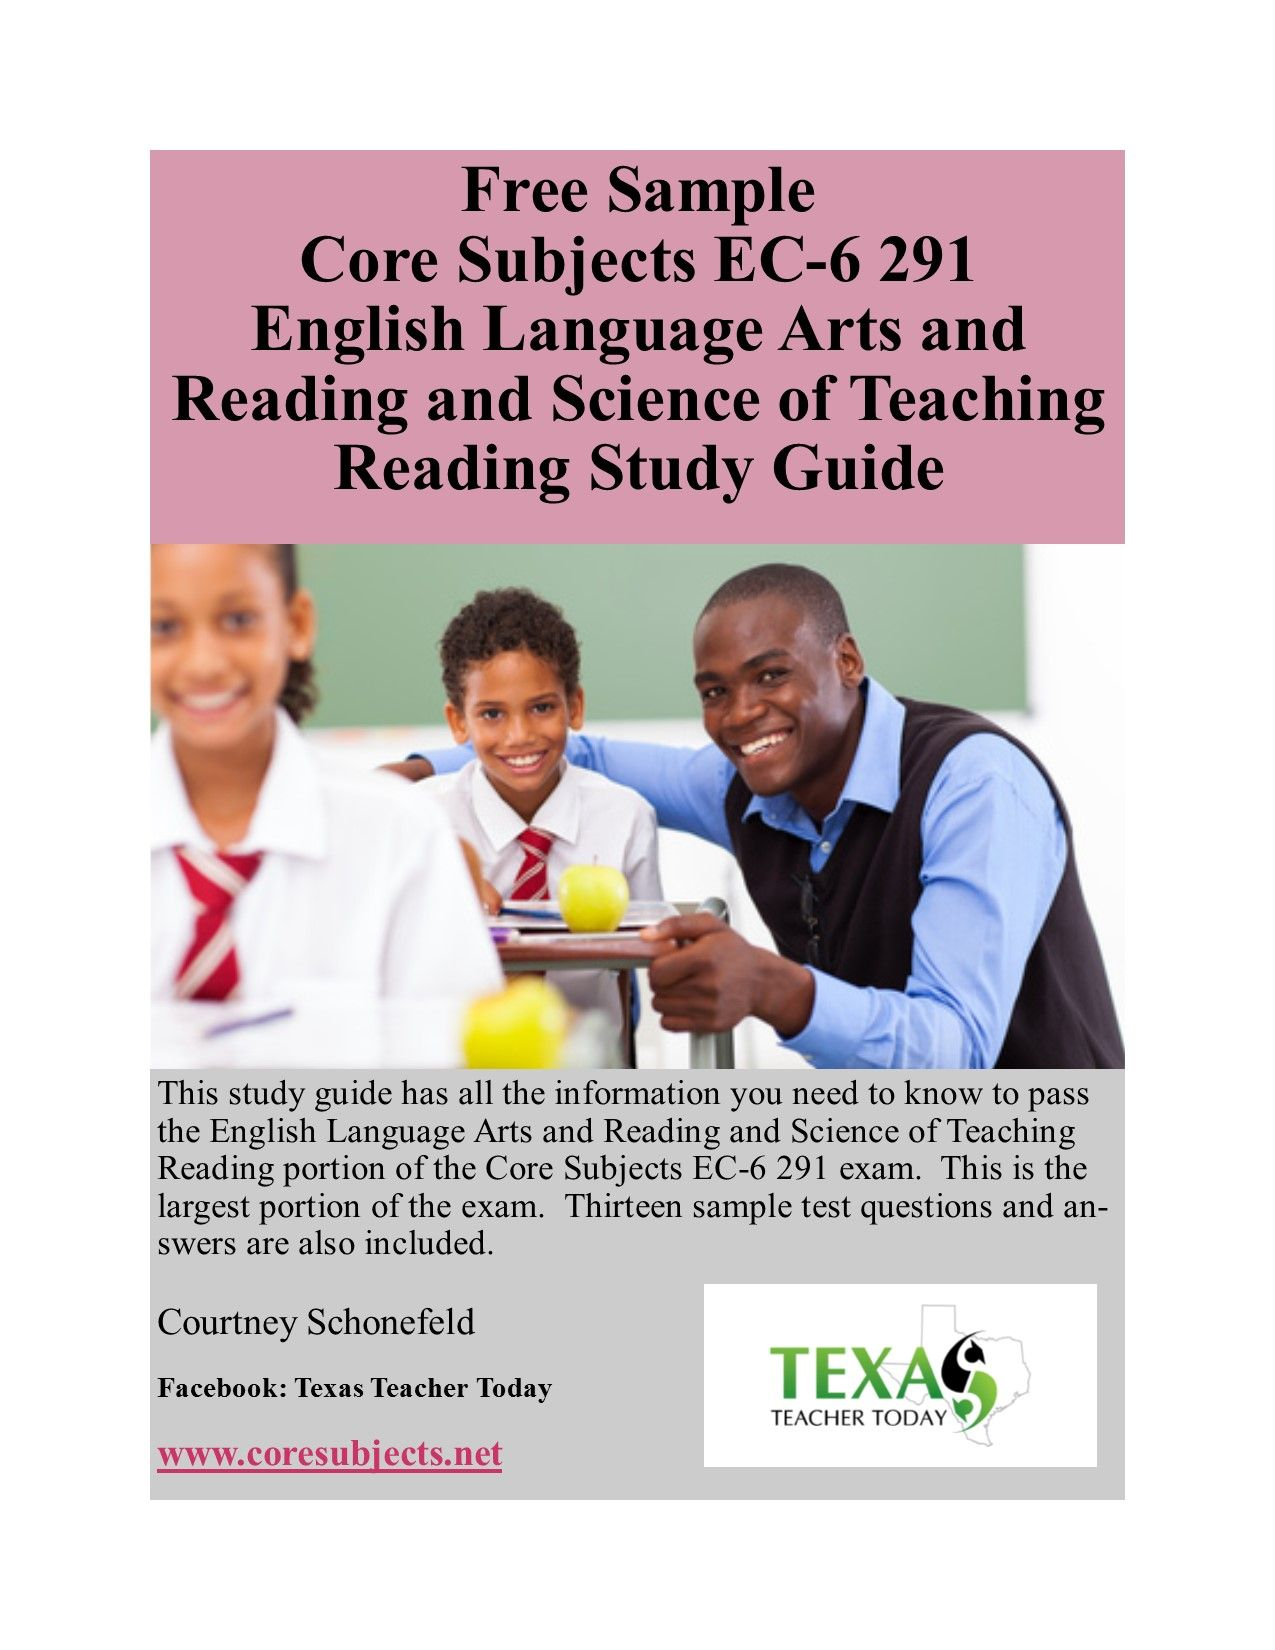 Free sample of the study guide for the English Language Arts and Reading  and Science of Teaching Reading portion of the TExES Core Subjects EC-6 291  exam.